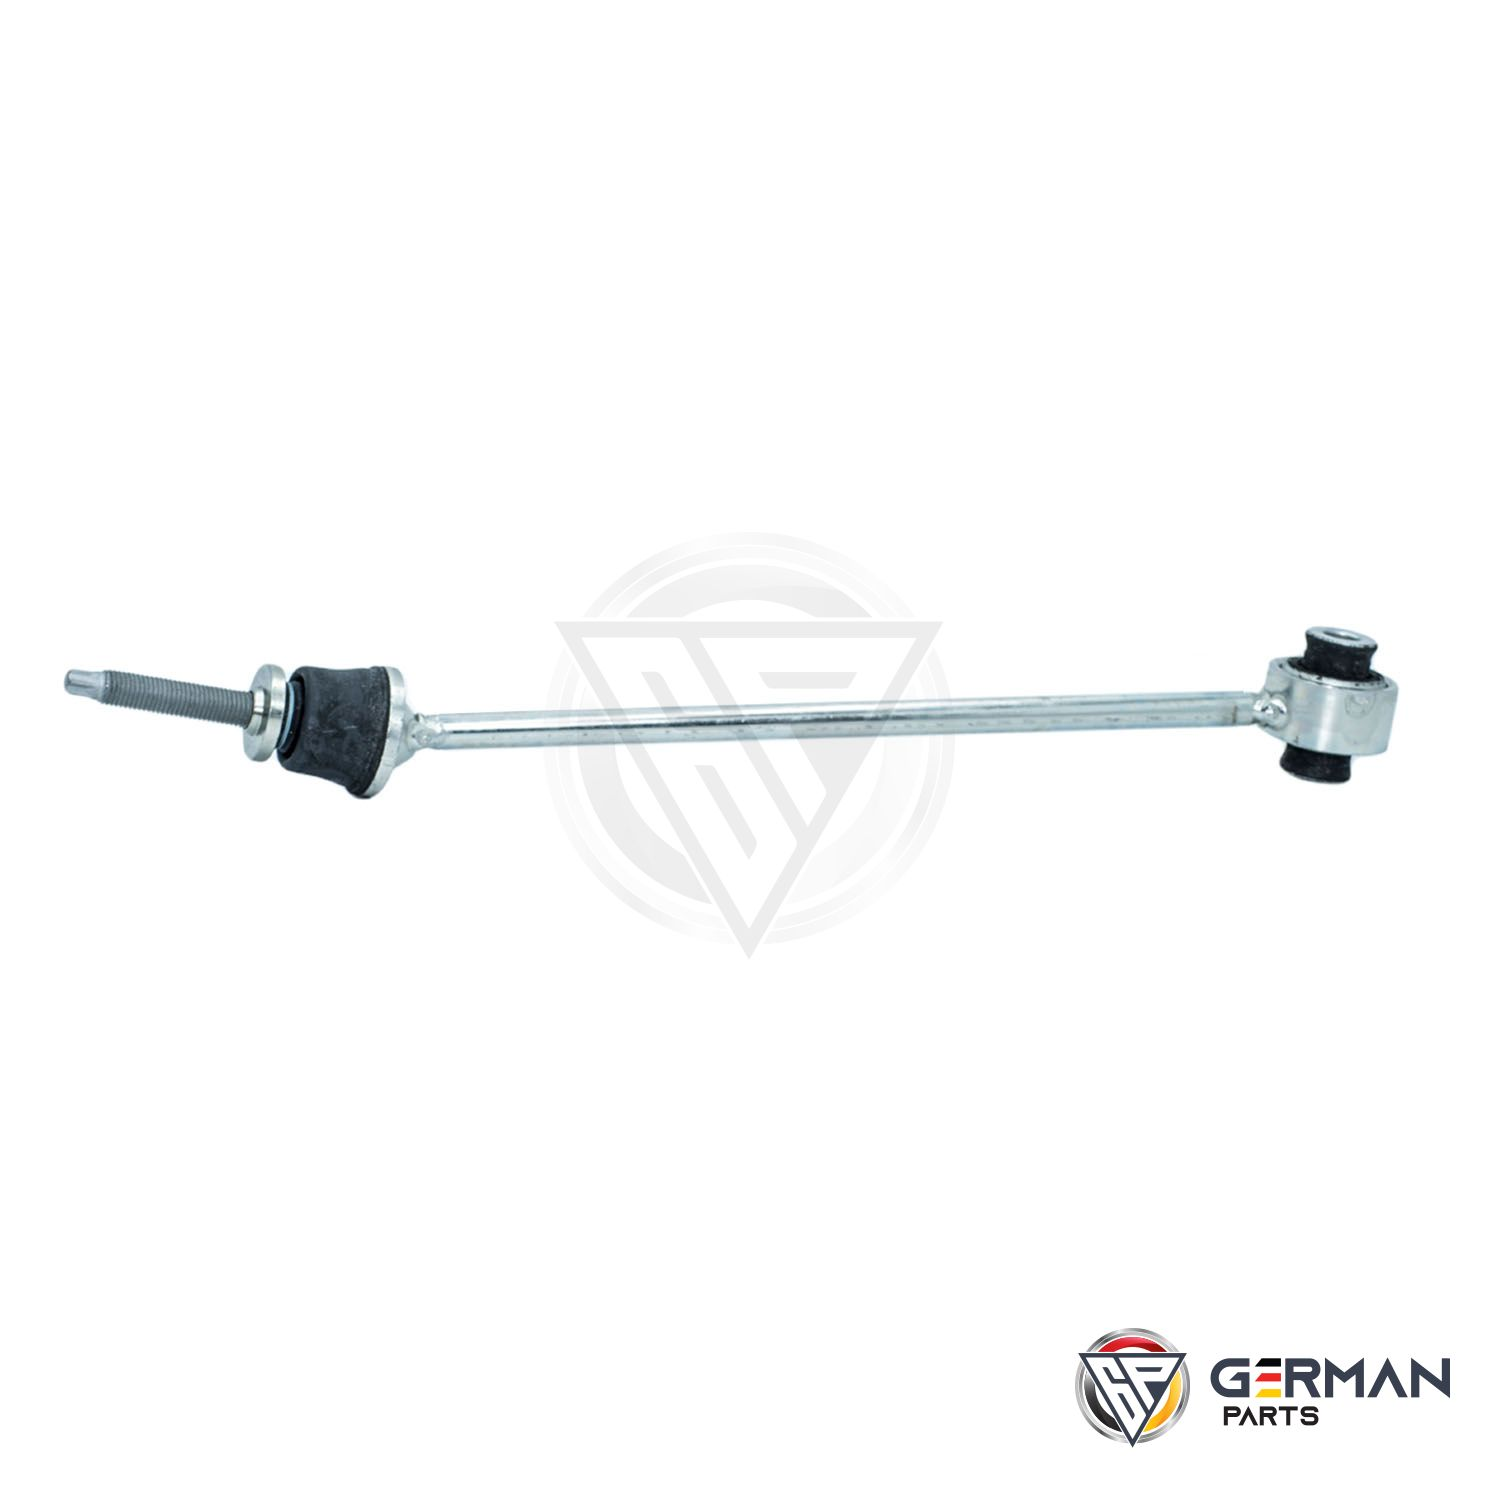 Buy Genuine Mercedes Benz Stabilizer Linkage Right 1663201200 - German Parts